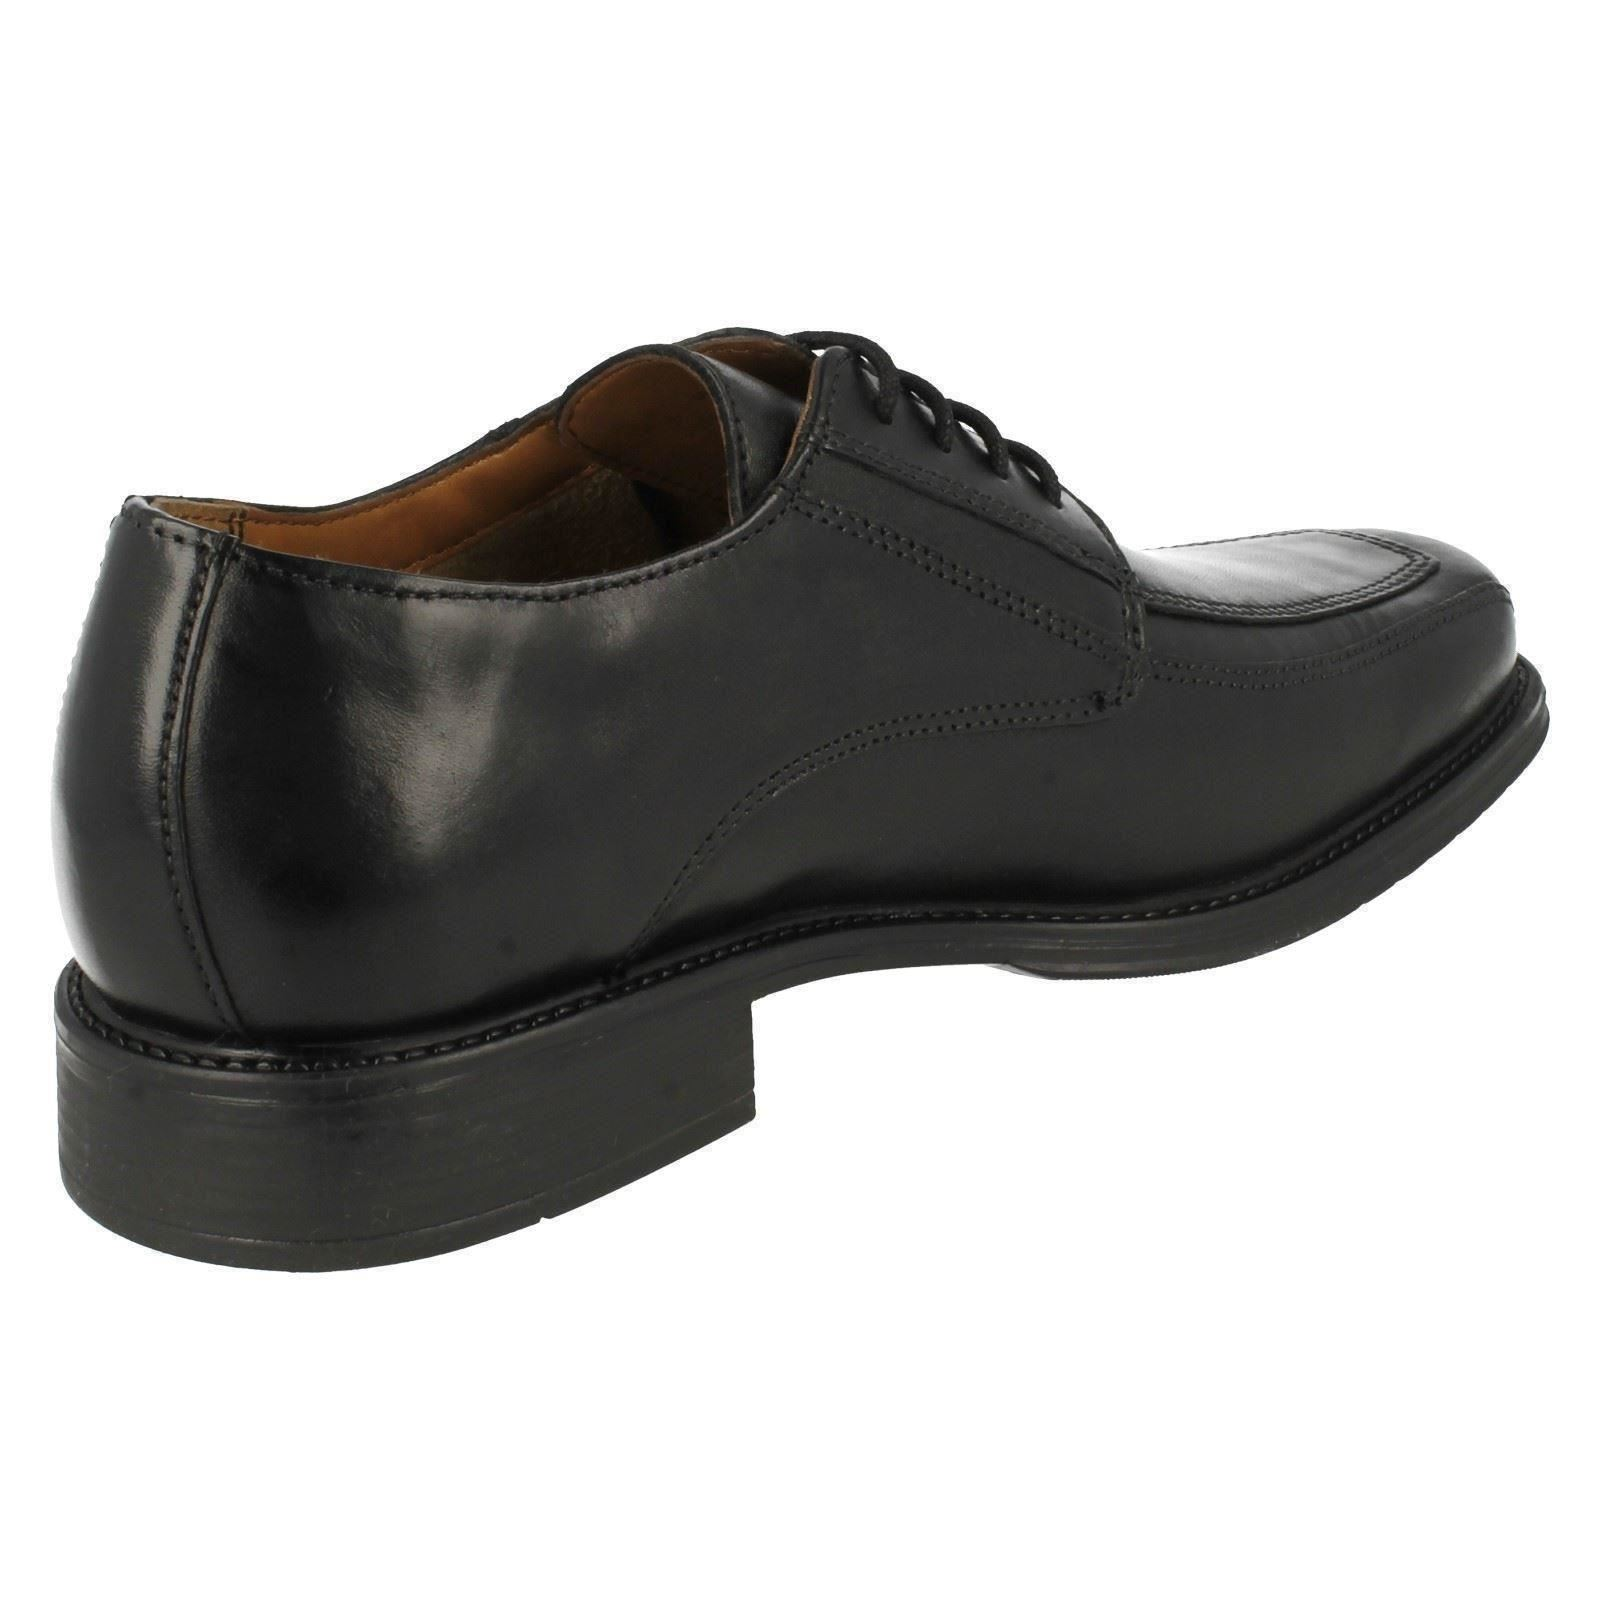 Mens Clarks Lace Up Shoes Driggs Walk